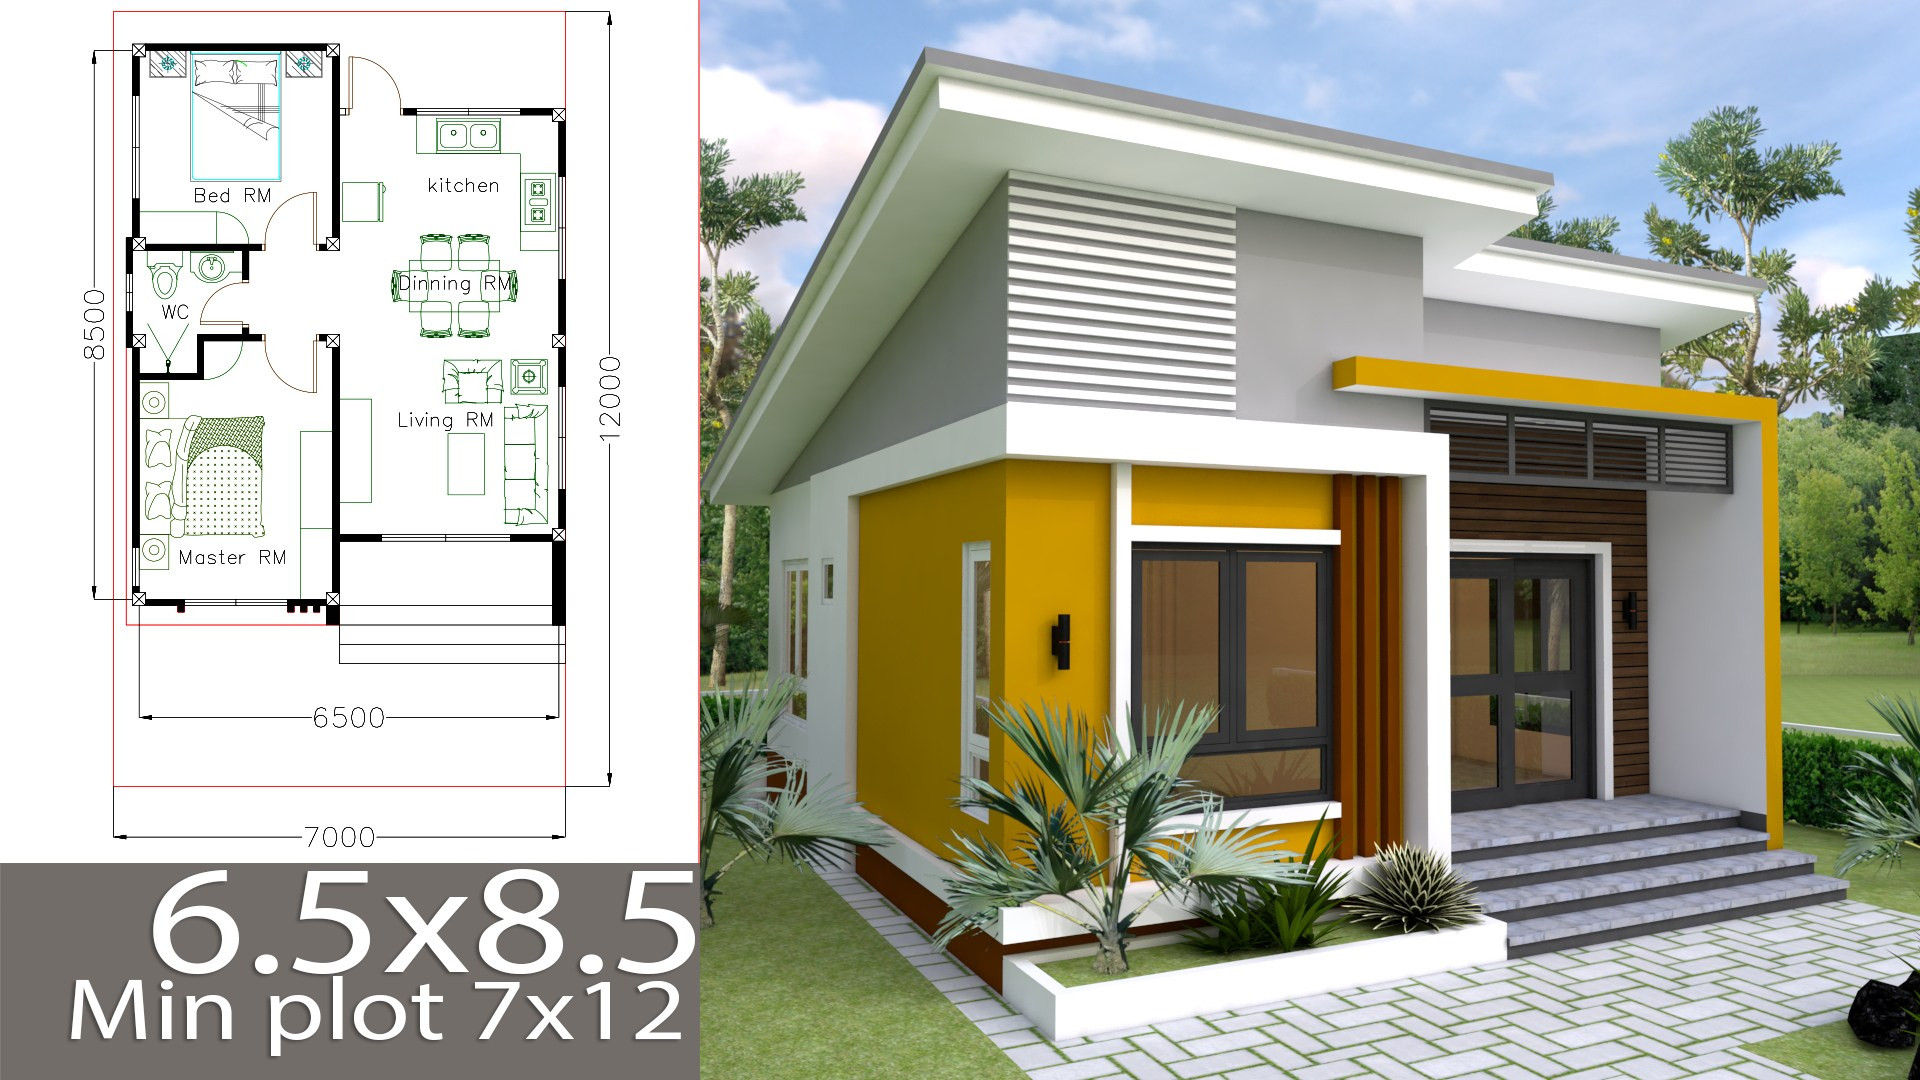 Small 2 Bedroom House Plans  Small Home design Plan 6 5x8 5m with 2 Bedrooms Samphoas